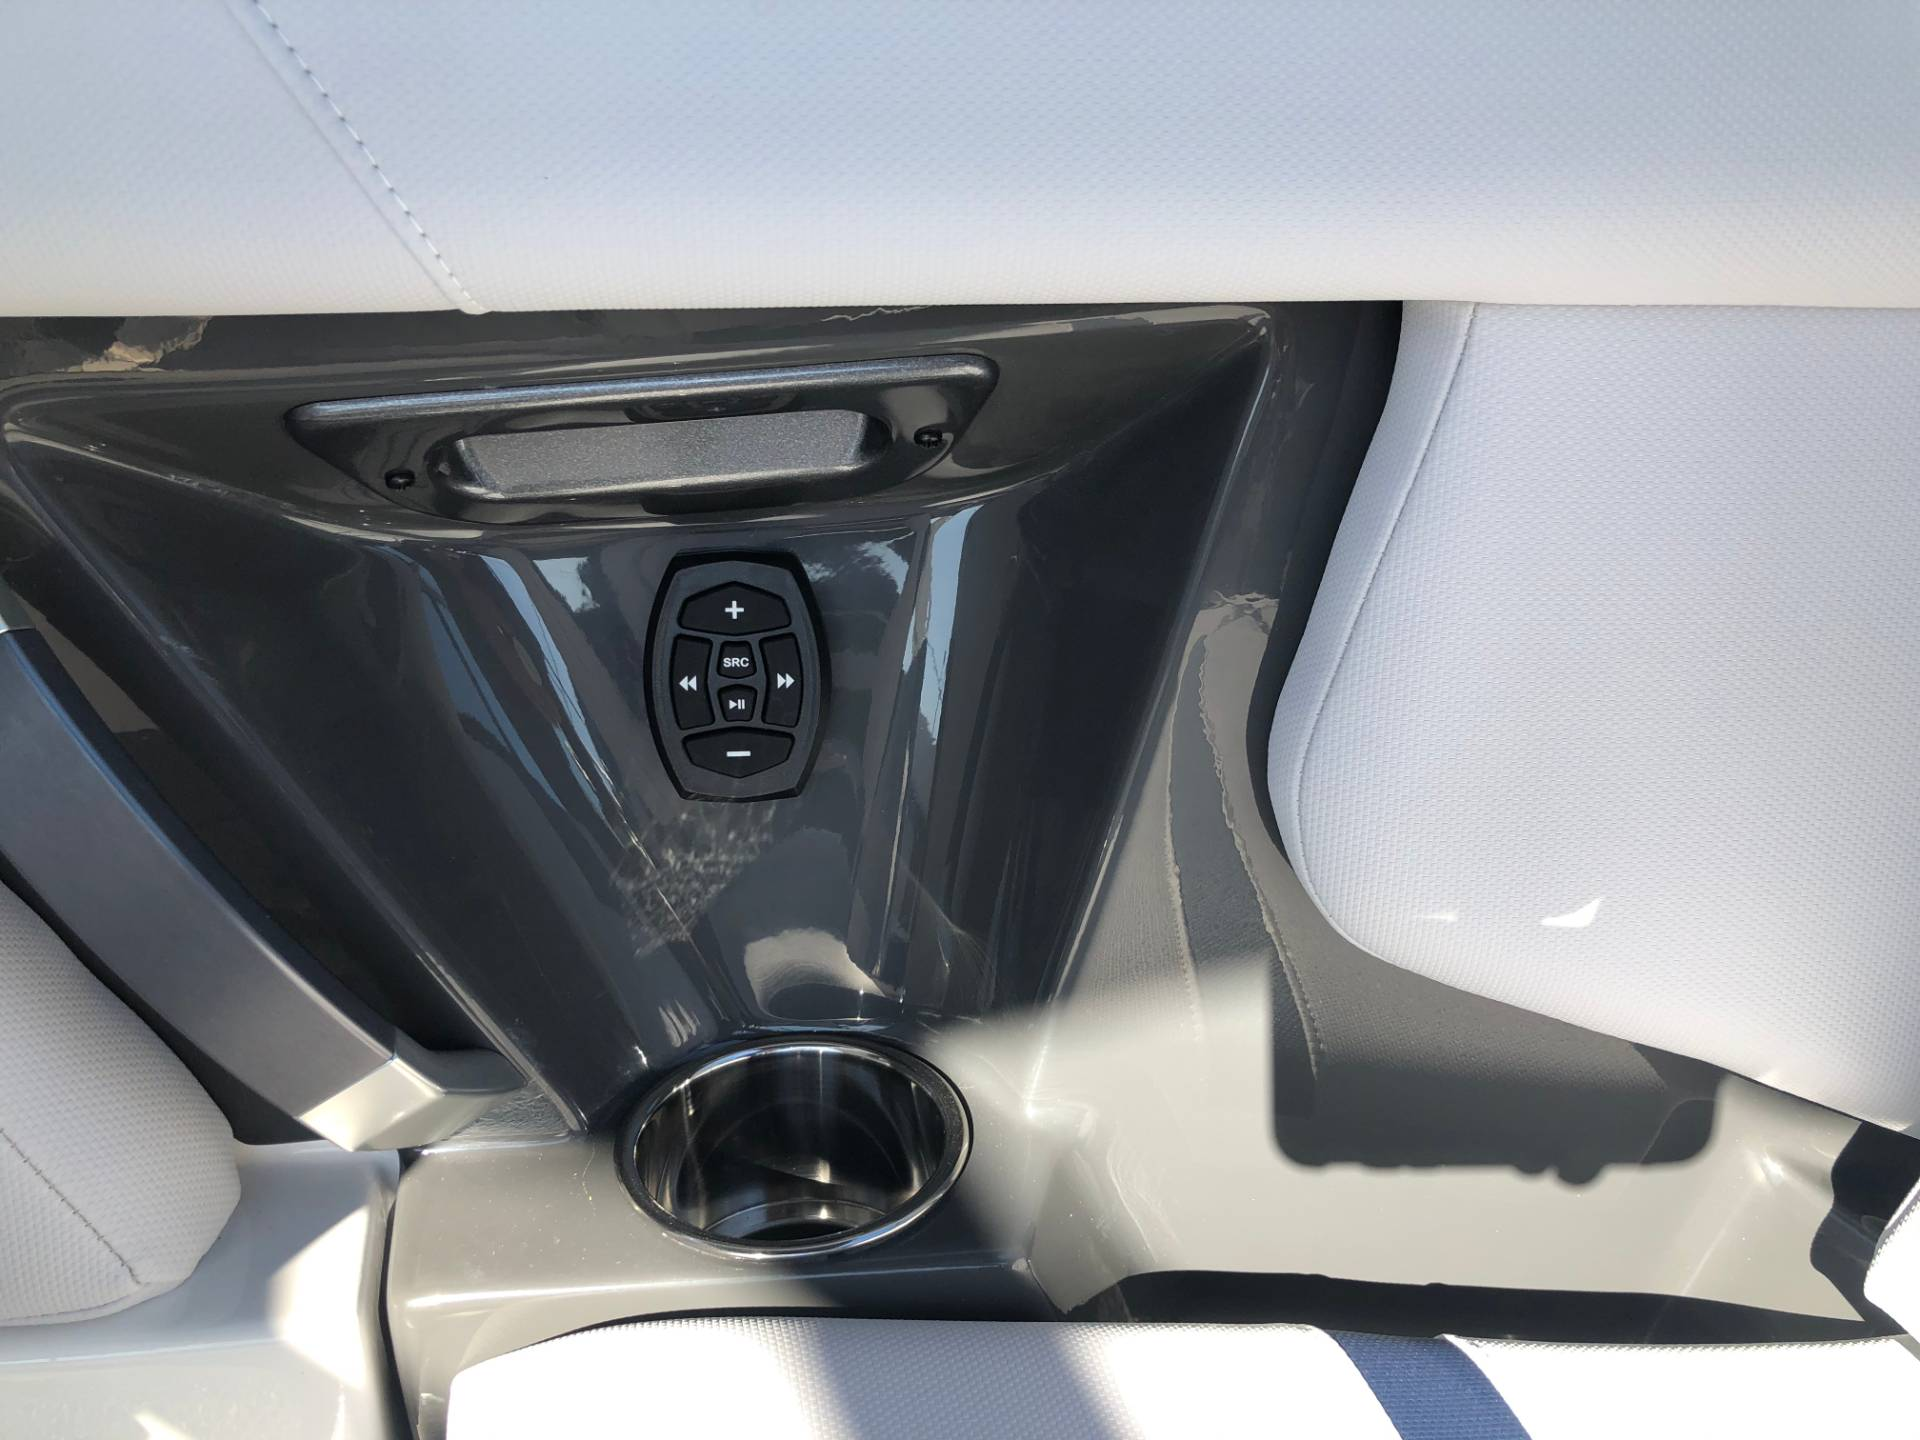 2020 Mastercraft X24 in Madera, California - Photo 22